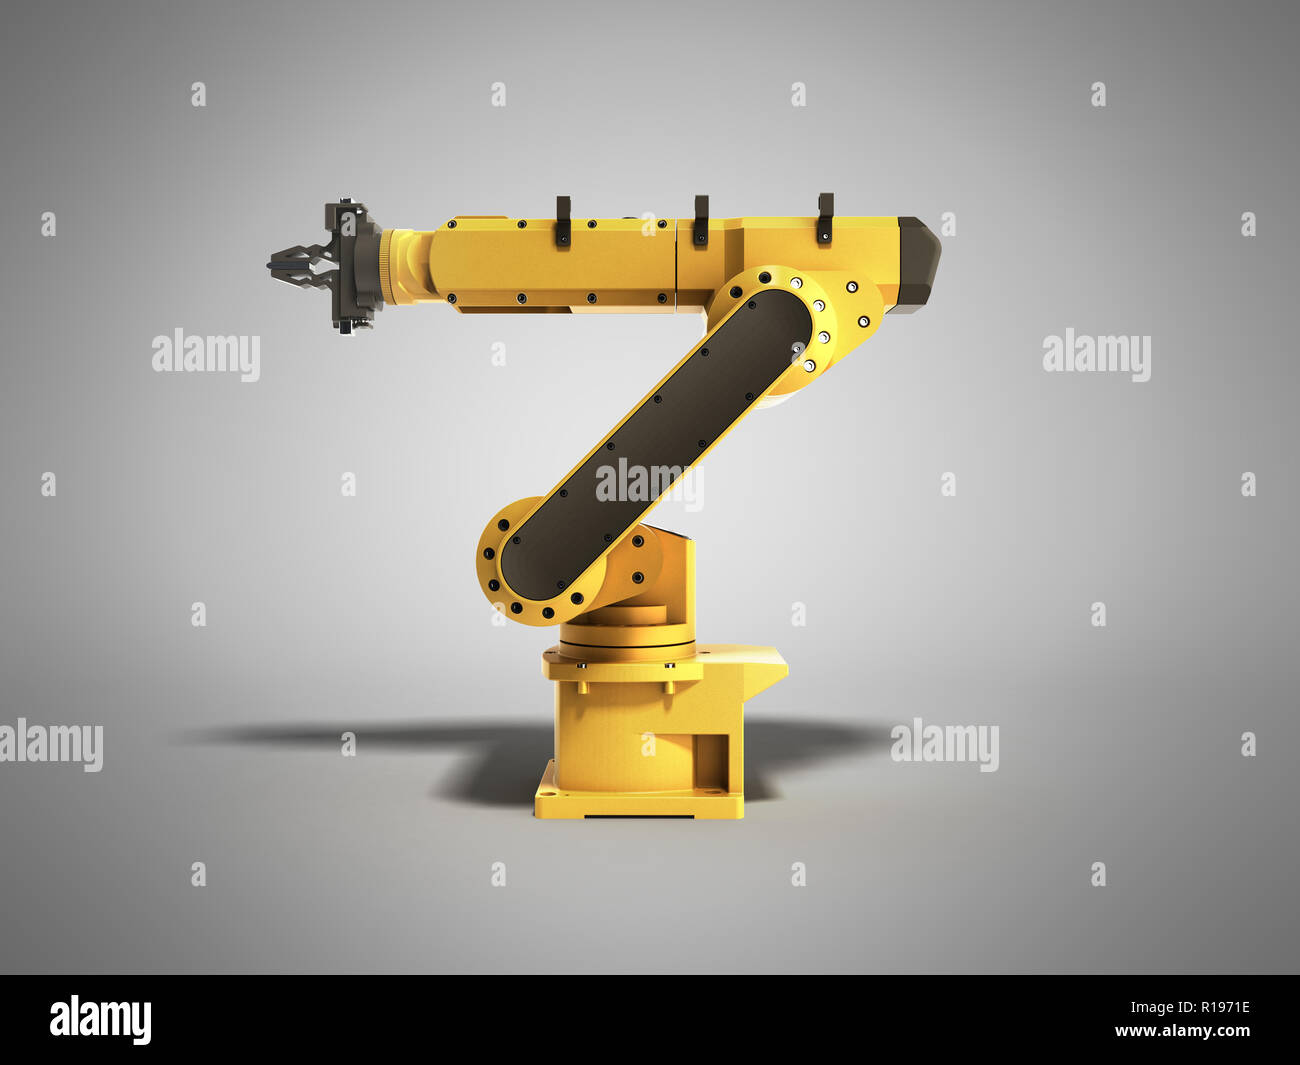 Industrial robot on grey background 3D rendering - Stock Image